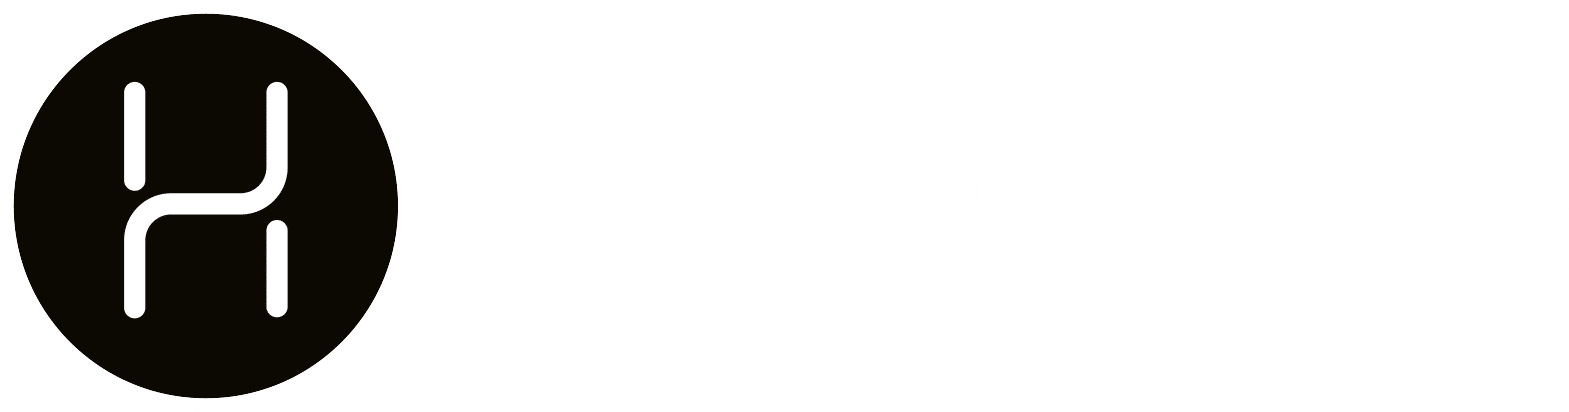 Haymoz Design